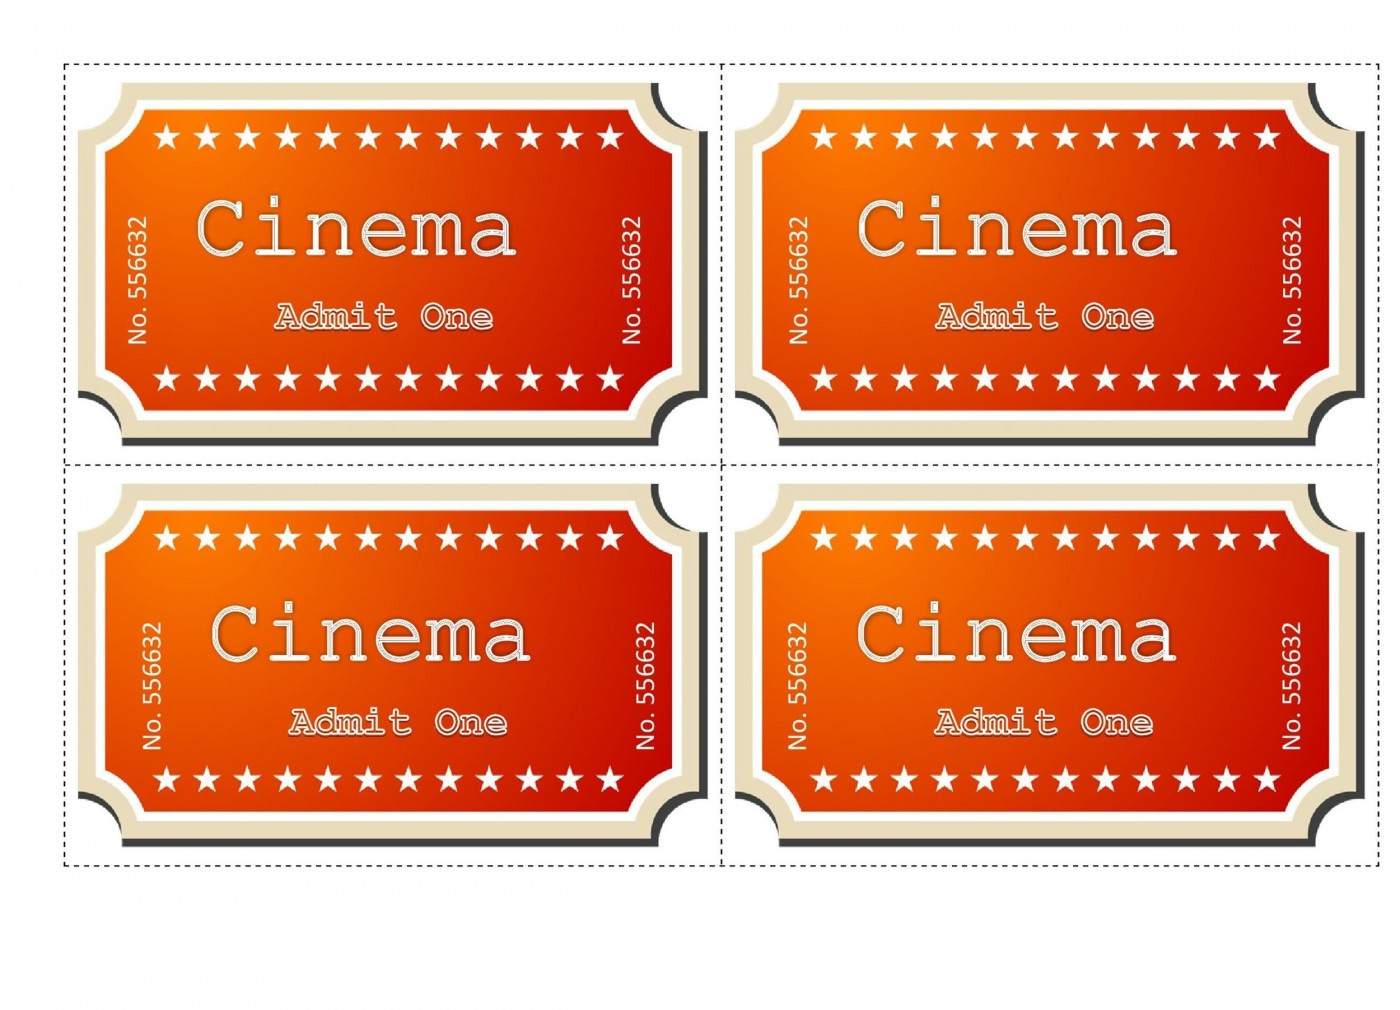 009 Remarkable Editable Ticket Template Free Highest Quality  Concert Word Irctc Format Download Movie1400